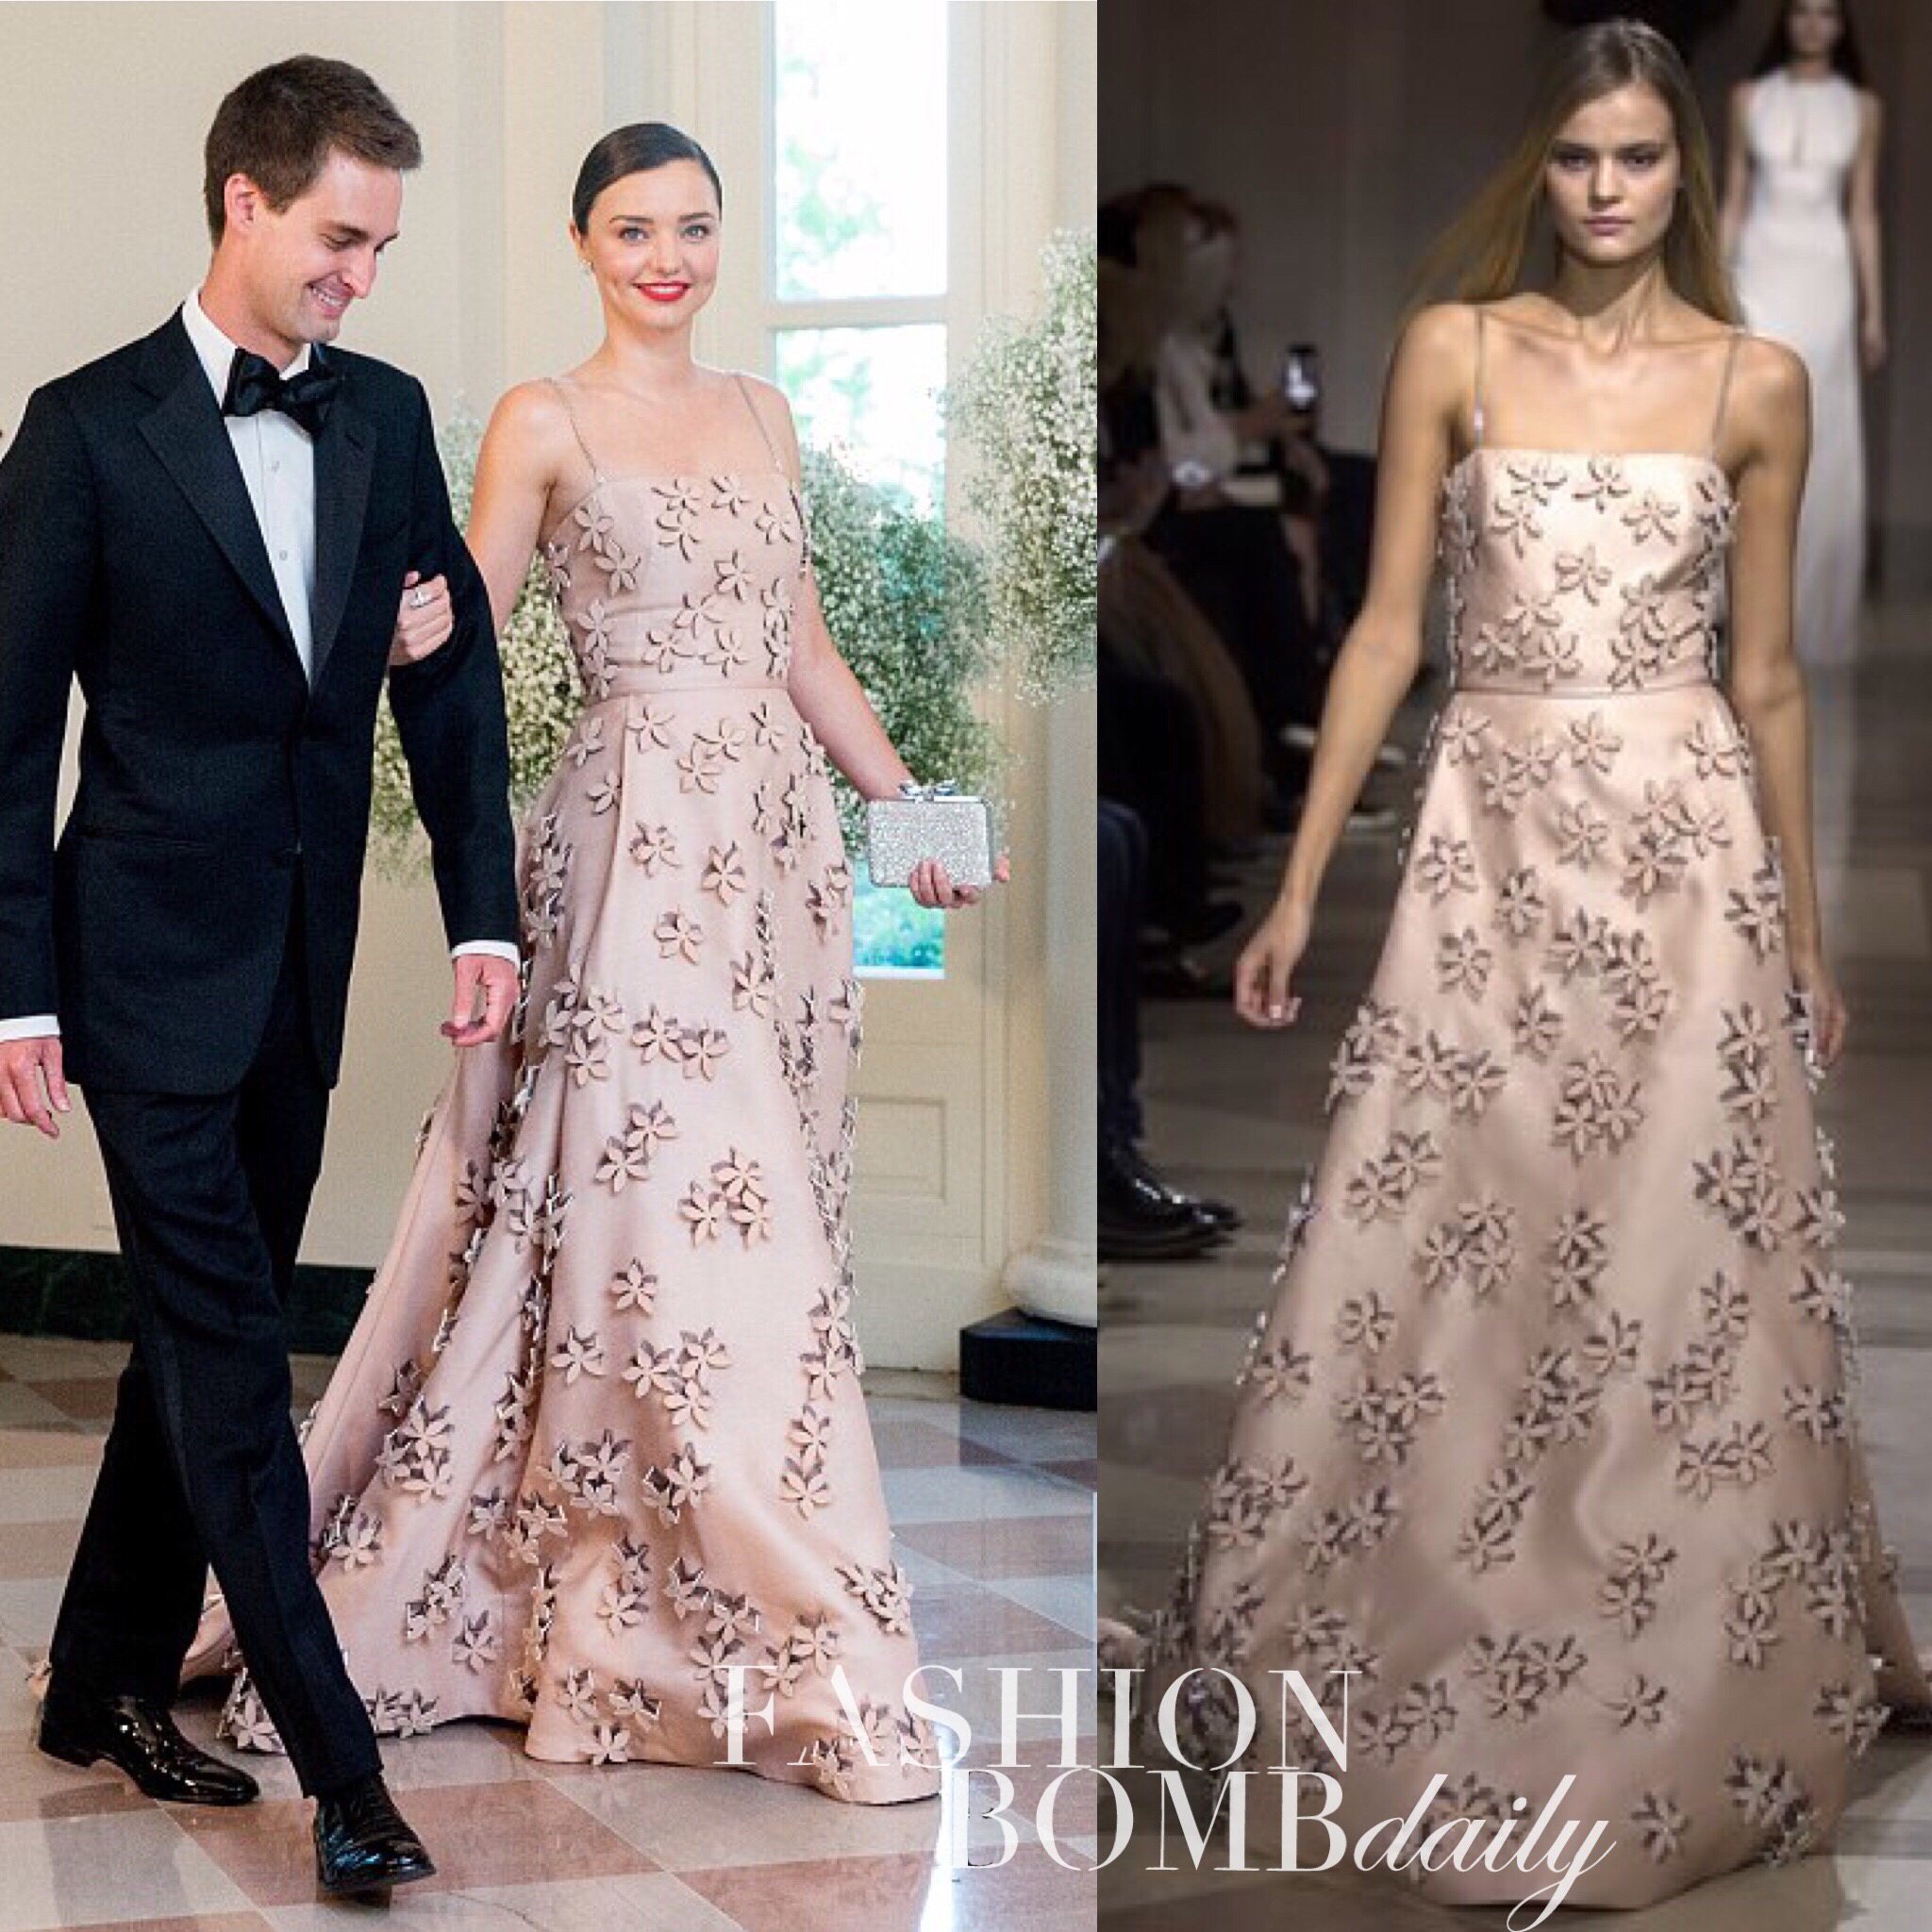 Hot Or Hmm Miranda Kerr White House State Dinner Carolina Herrera